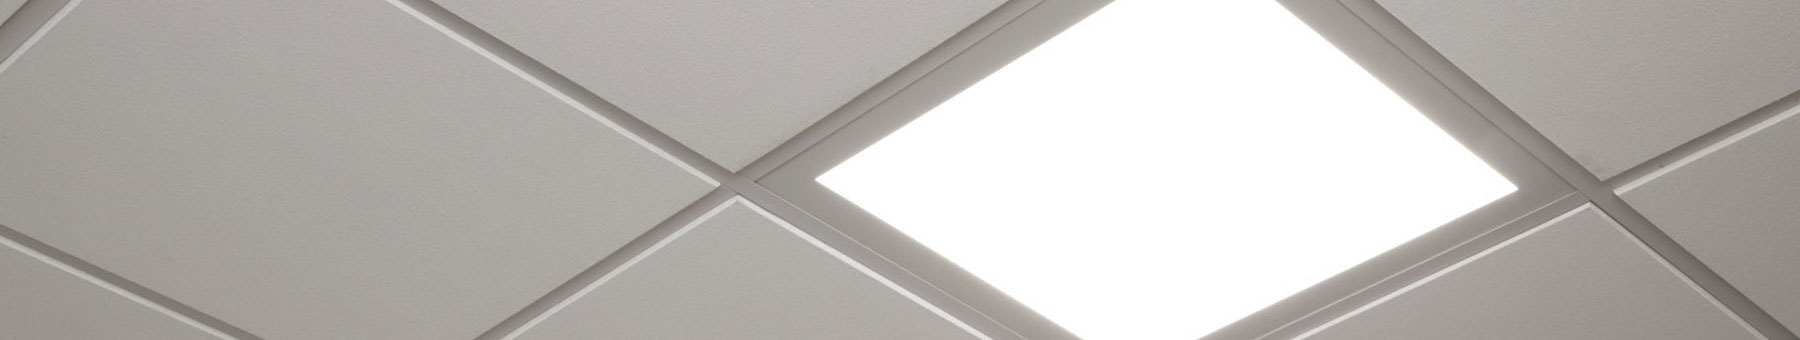 Suspended Ceilings Bristol & South West